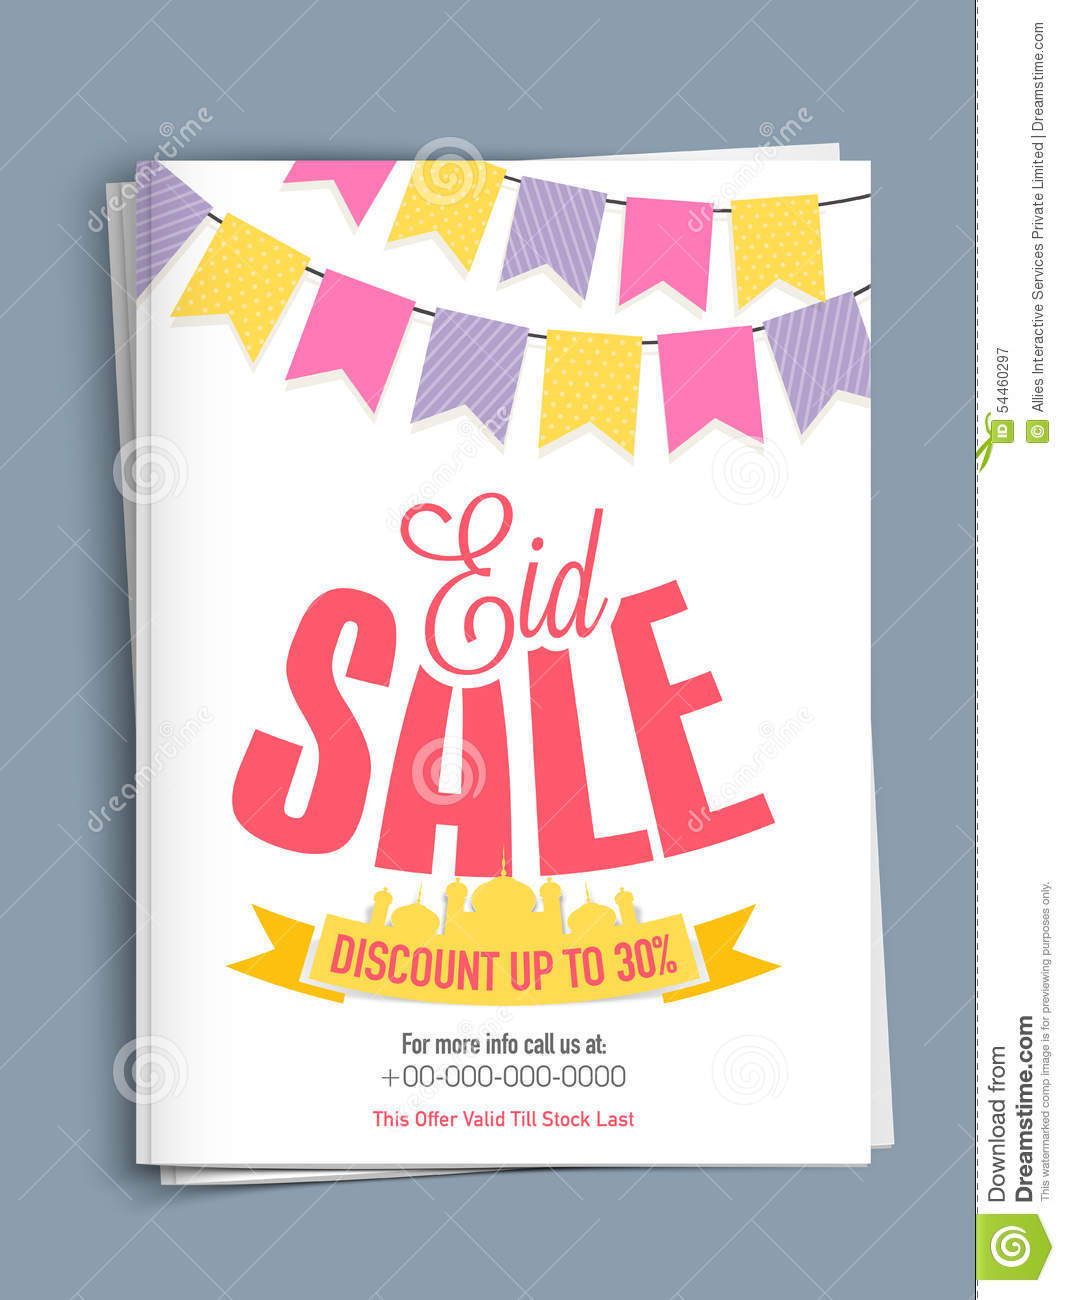 Creative Template Or Flyer Design For Eid Sale Illustration – Sale Flyer Design